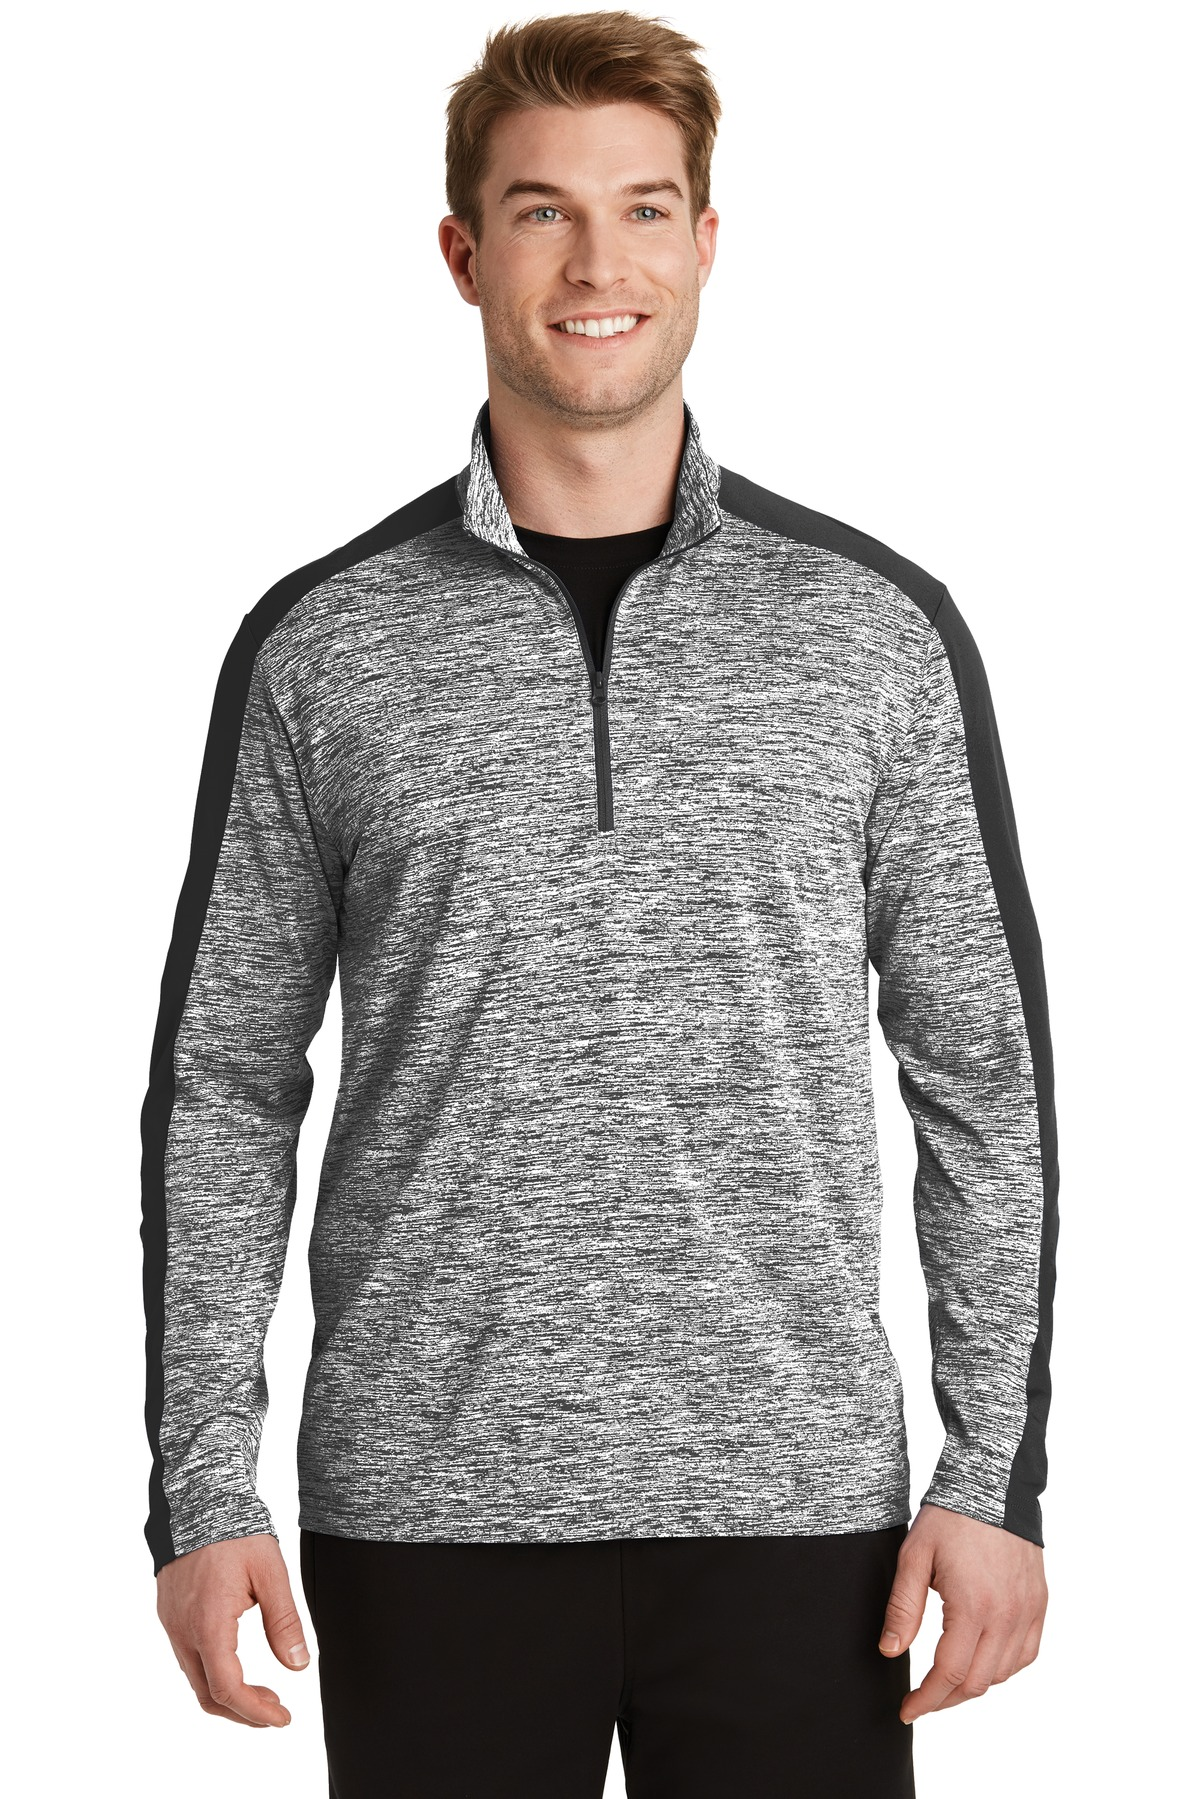 Sport Tek Posicharge Electric Heather Colorblock 1 4 Zip Pullover St397 Custom Shirt Shop Posicharge technology helps colors and logos stay vibrant longer. sport tek posicharge electric